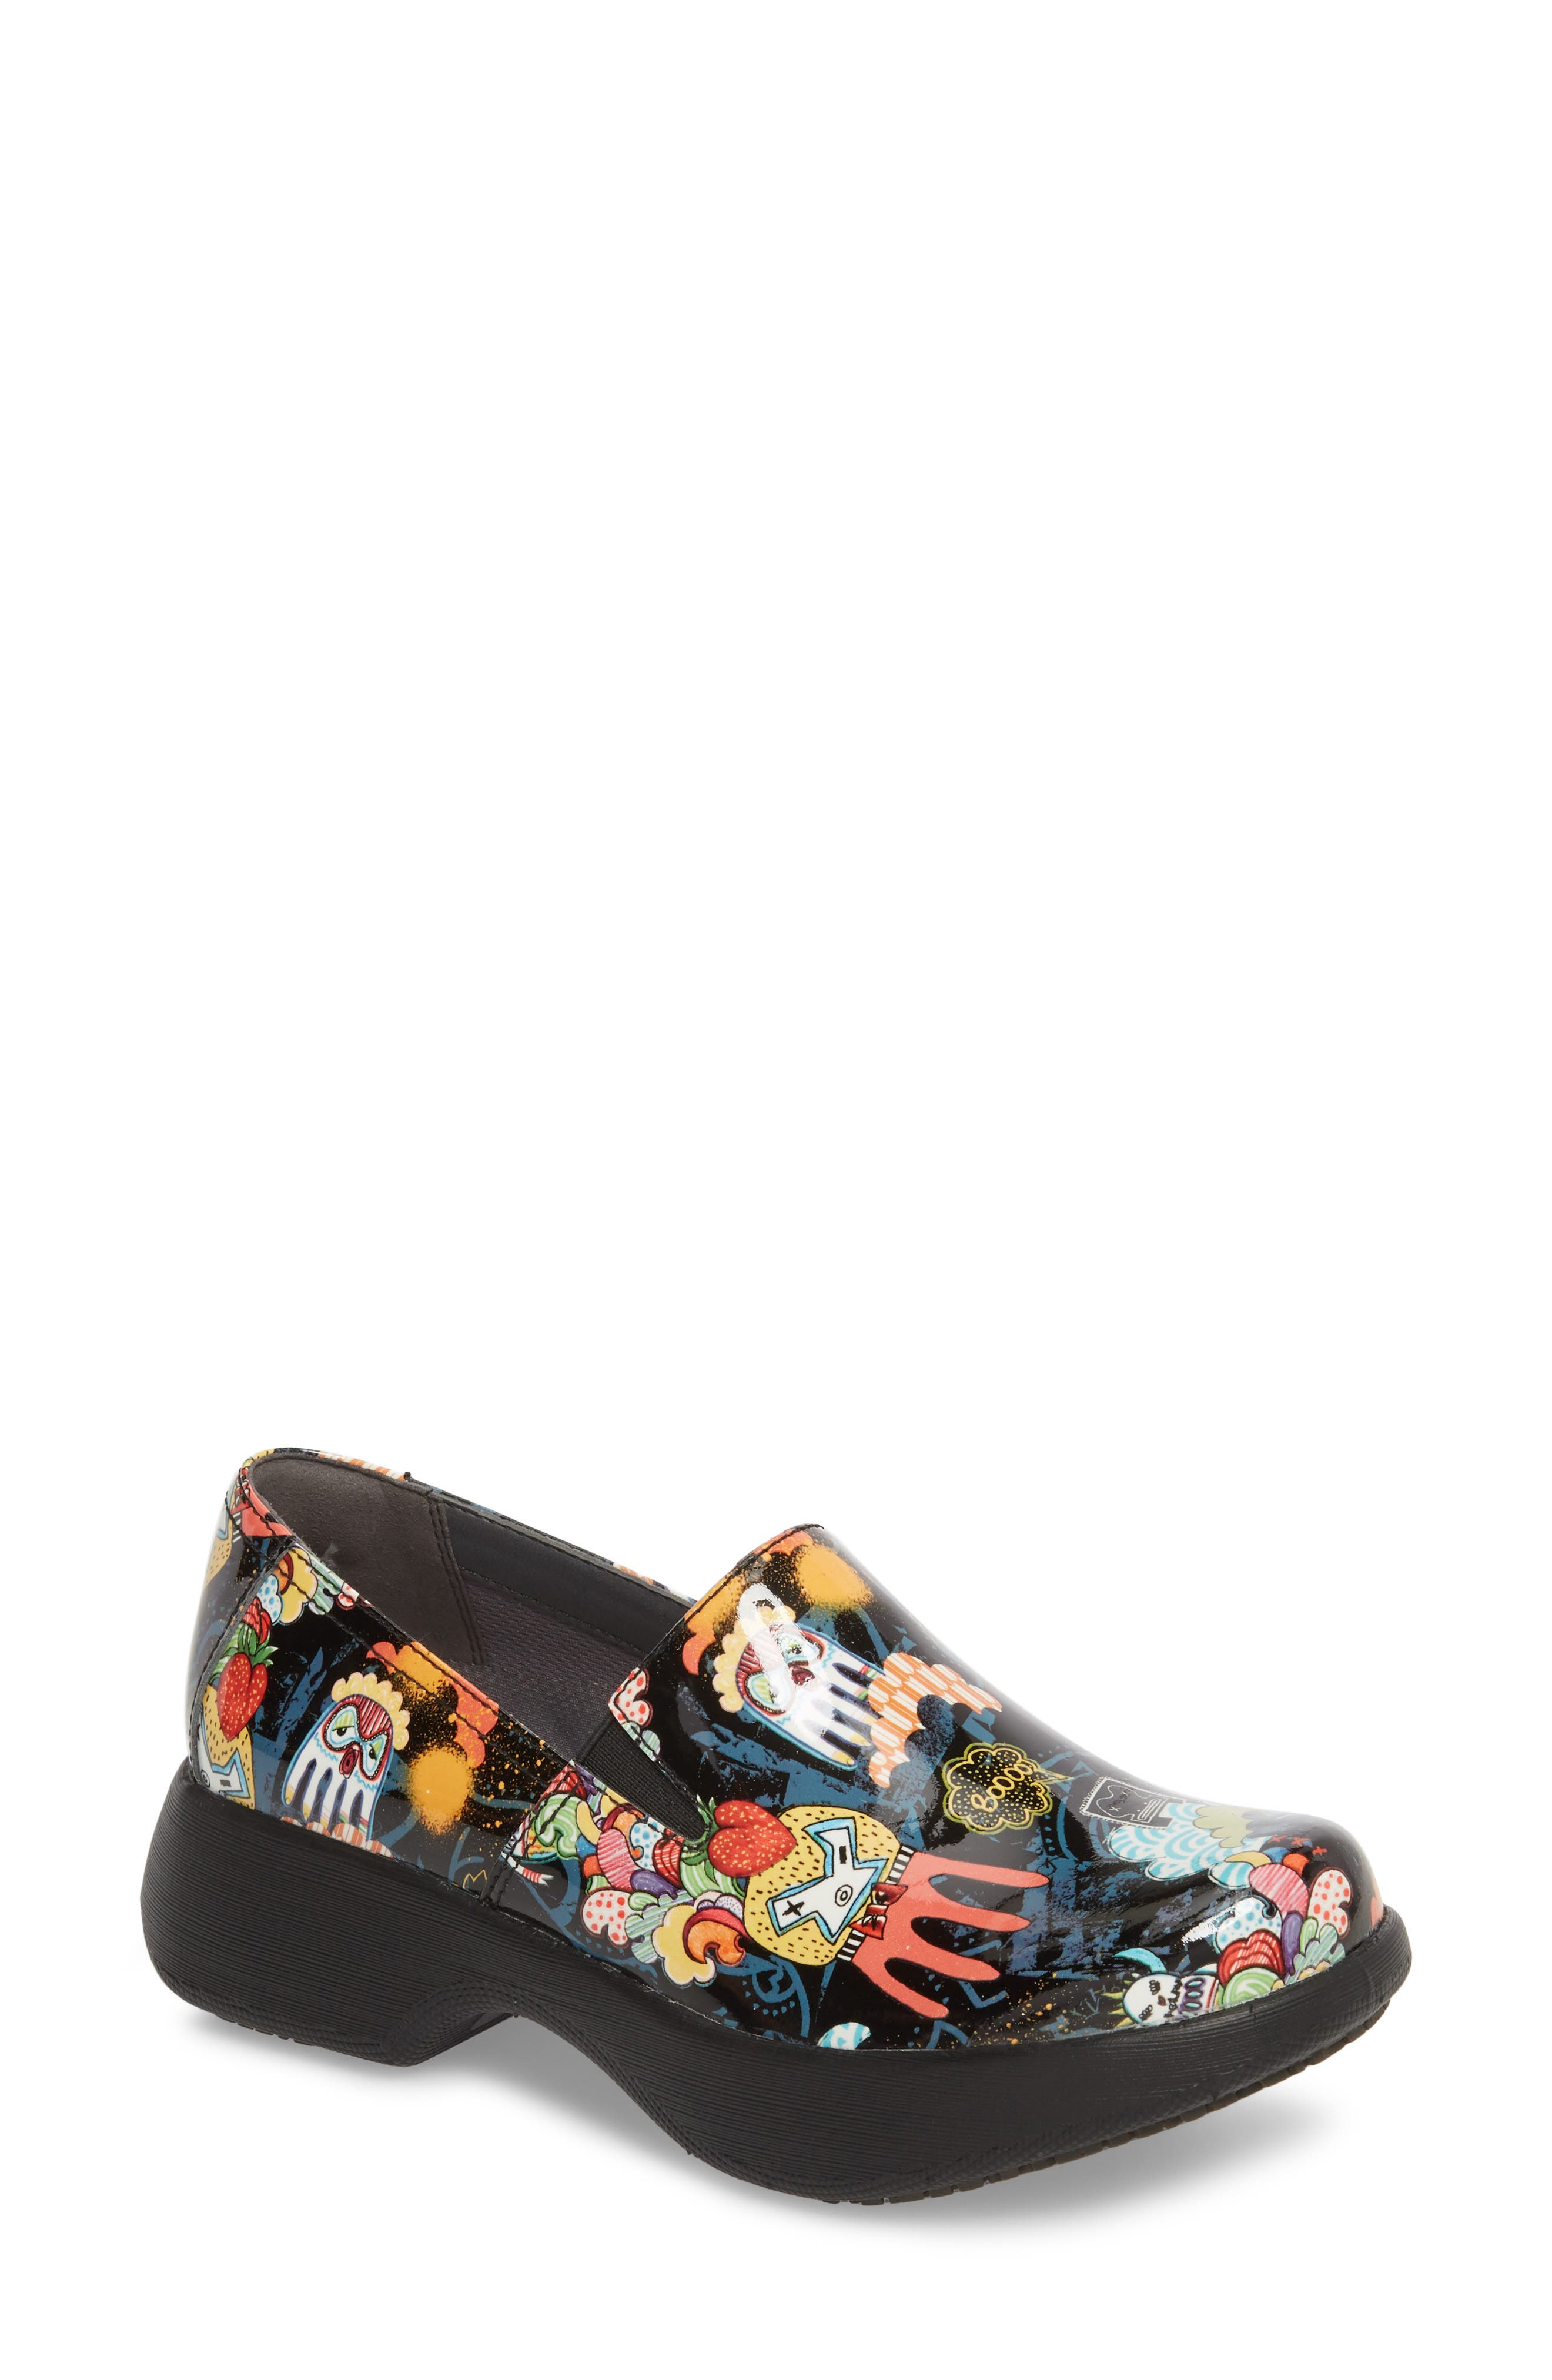 Winona Slip-On Clog,                         Main,                         color, Monster Patent Leather